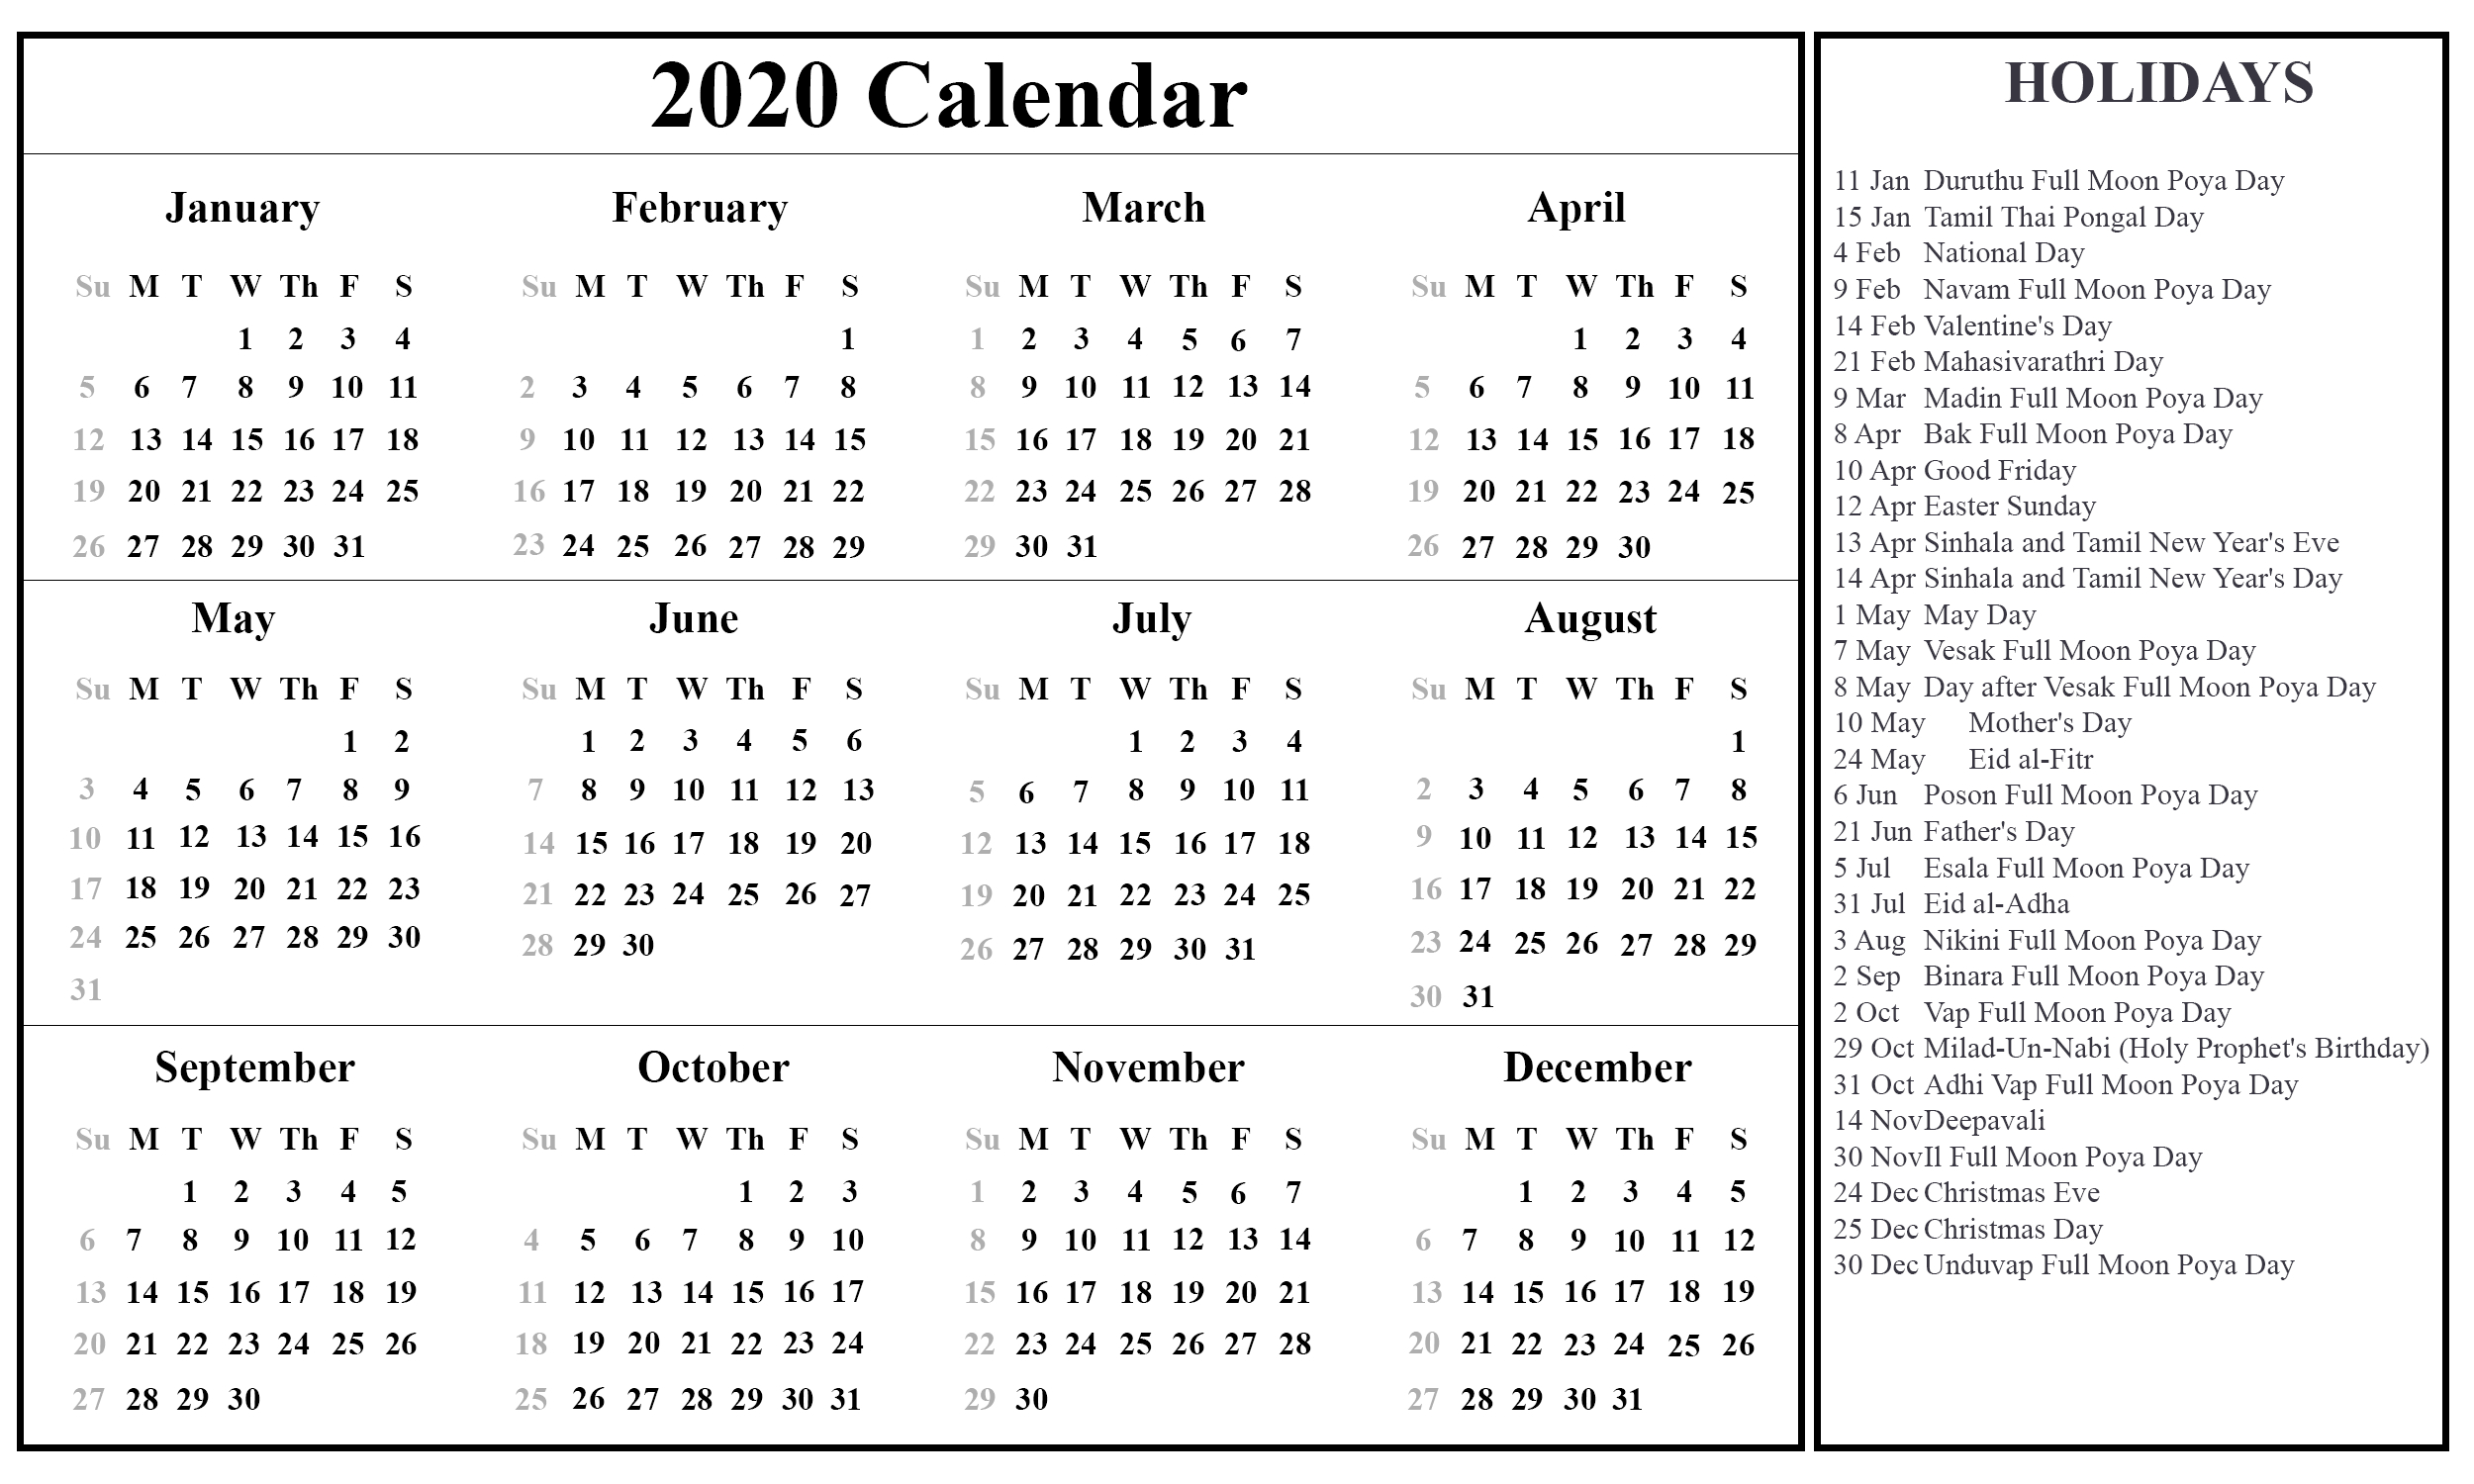 2020 Calendar Including Bank Holidays